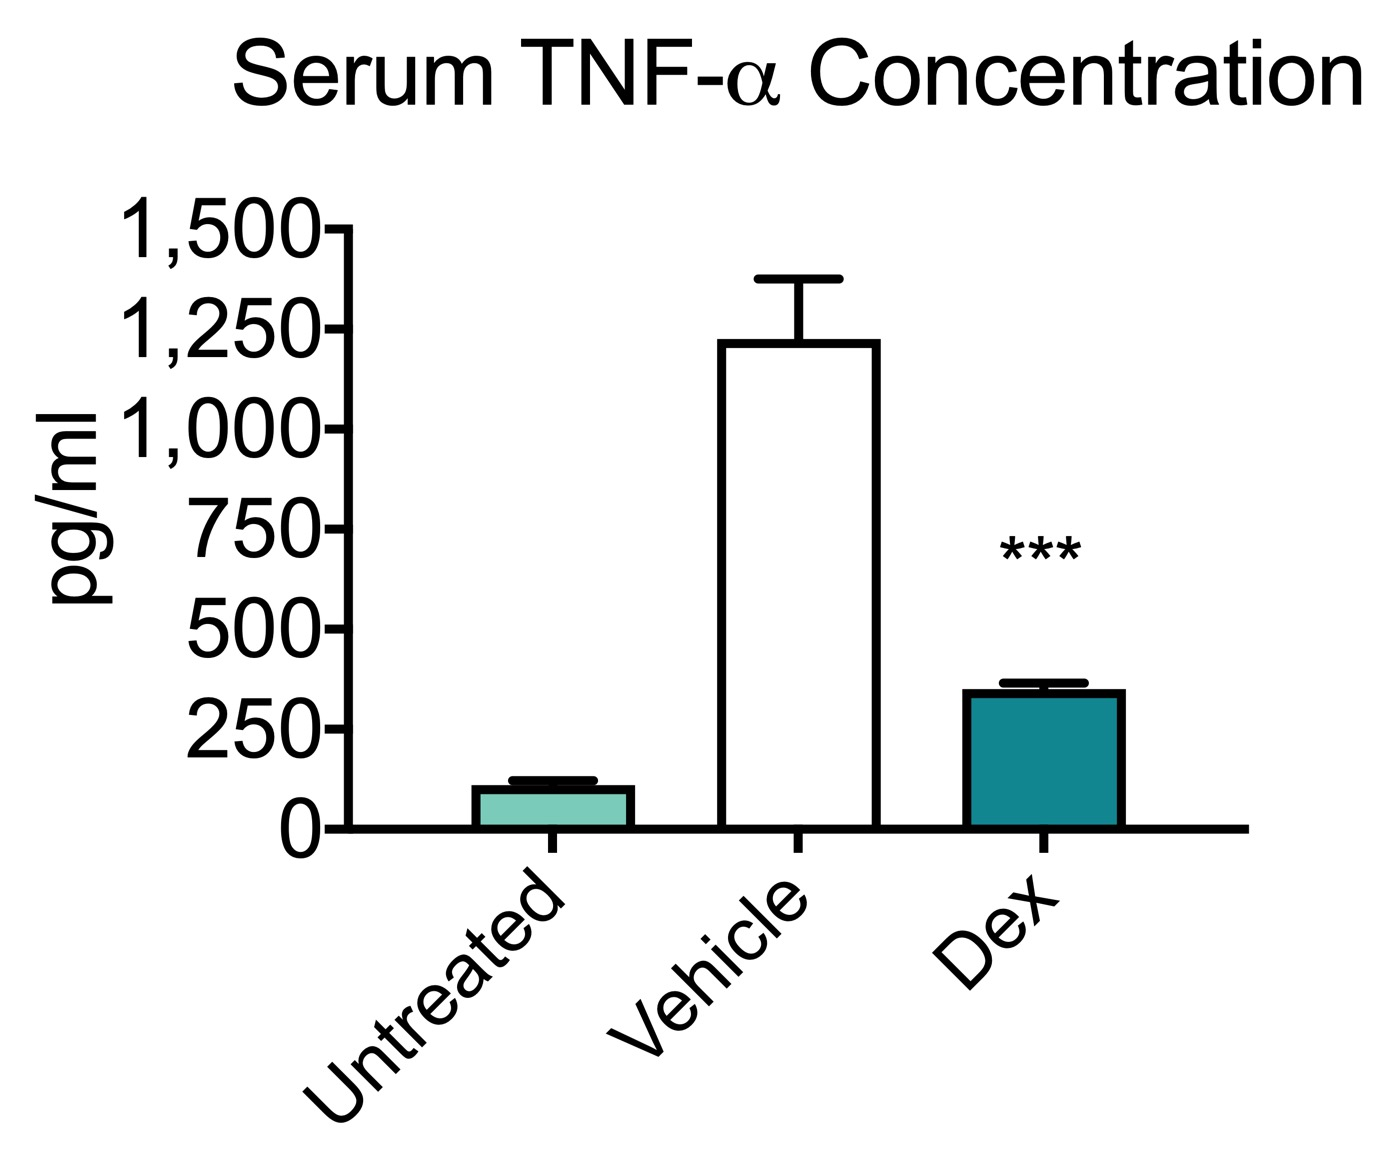 Concentration of TNF-alpha with increasing dose of LPS and treatment with dexamethosone in an LPS model of Sepsis